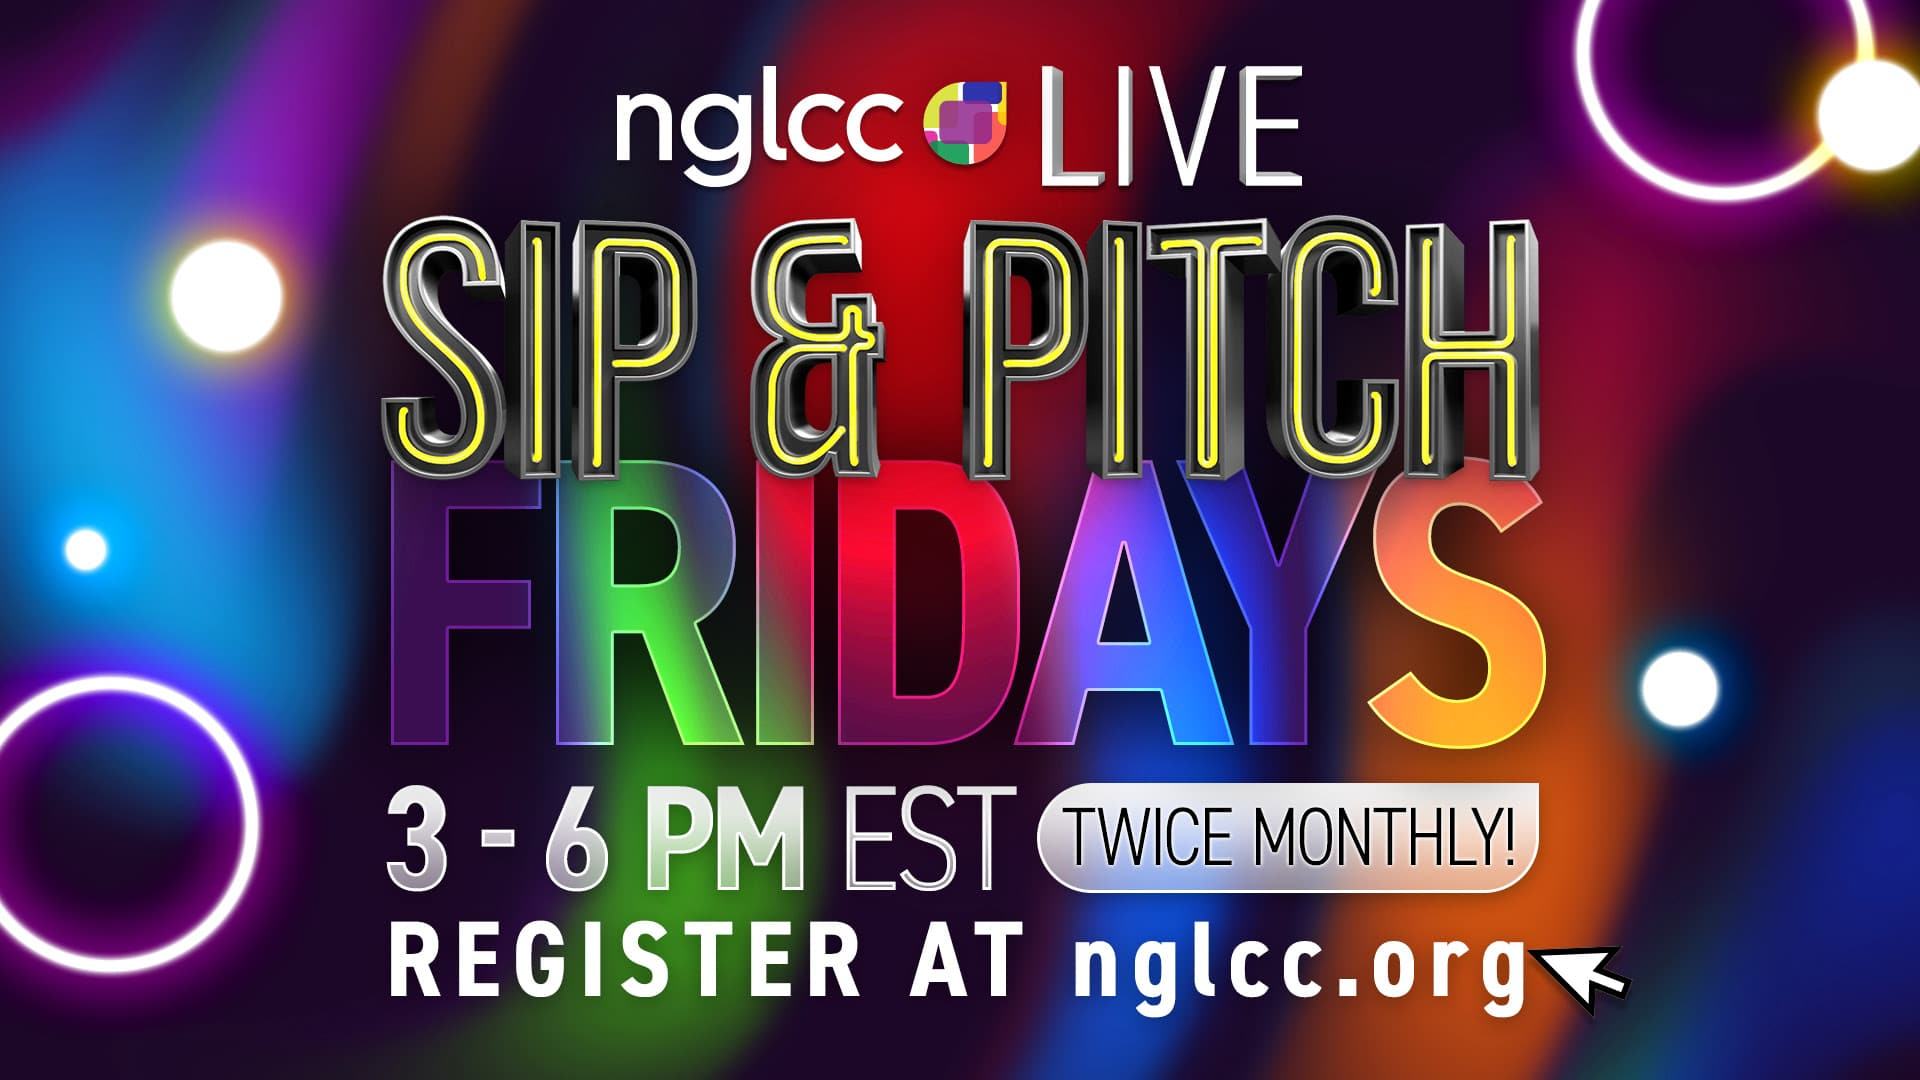 NGLCC presents: 'So You Think You Can Pitch?'